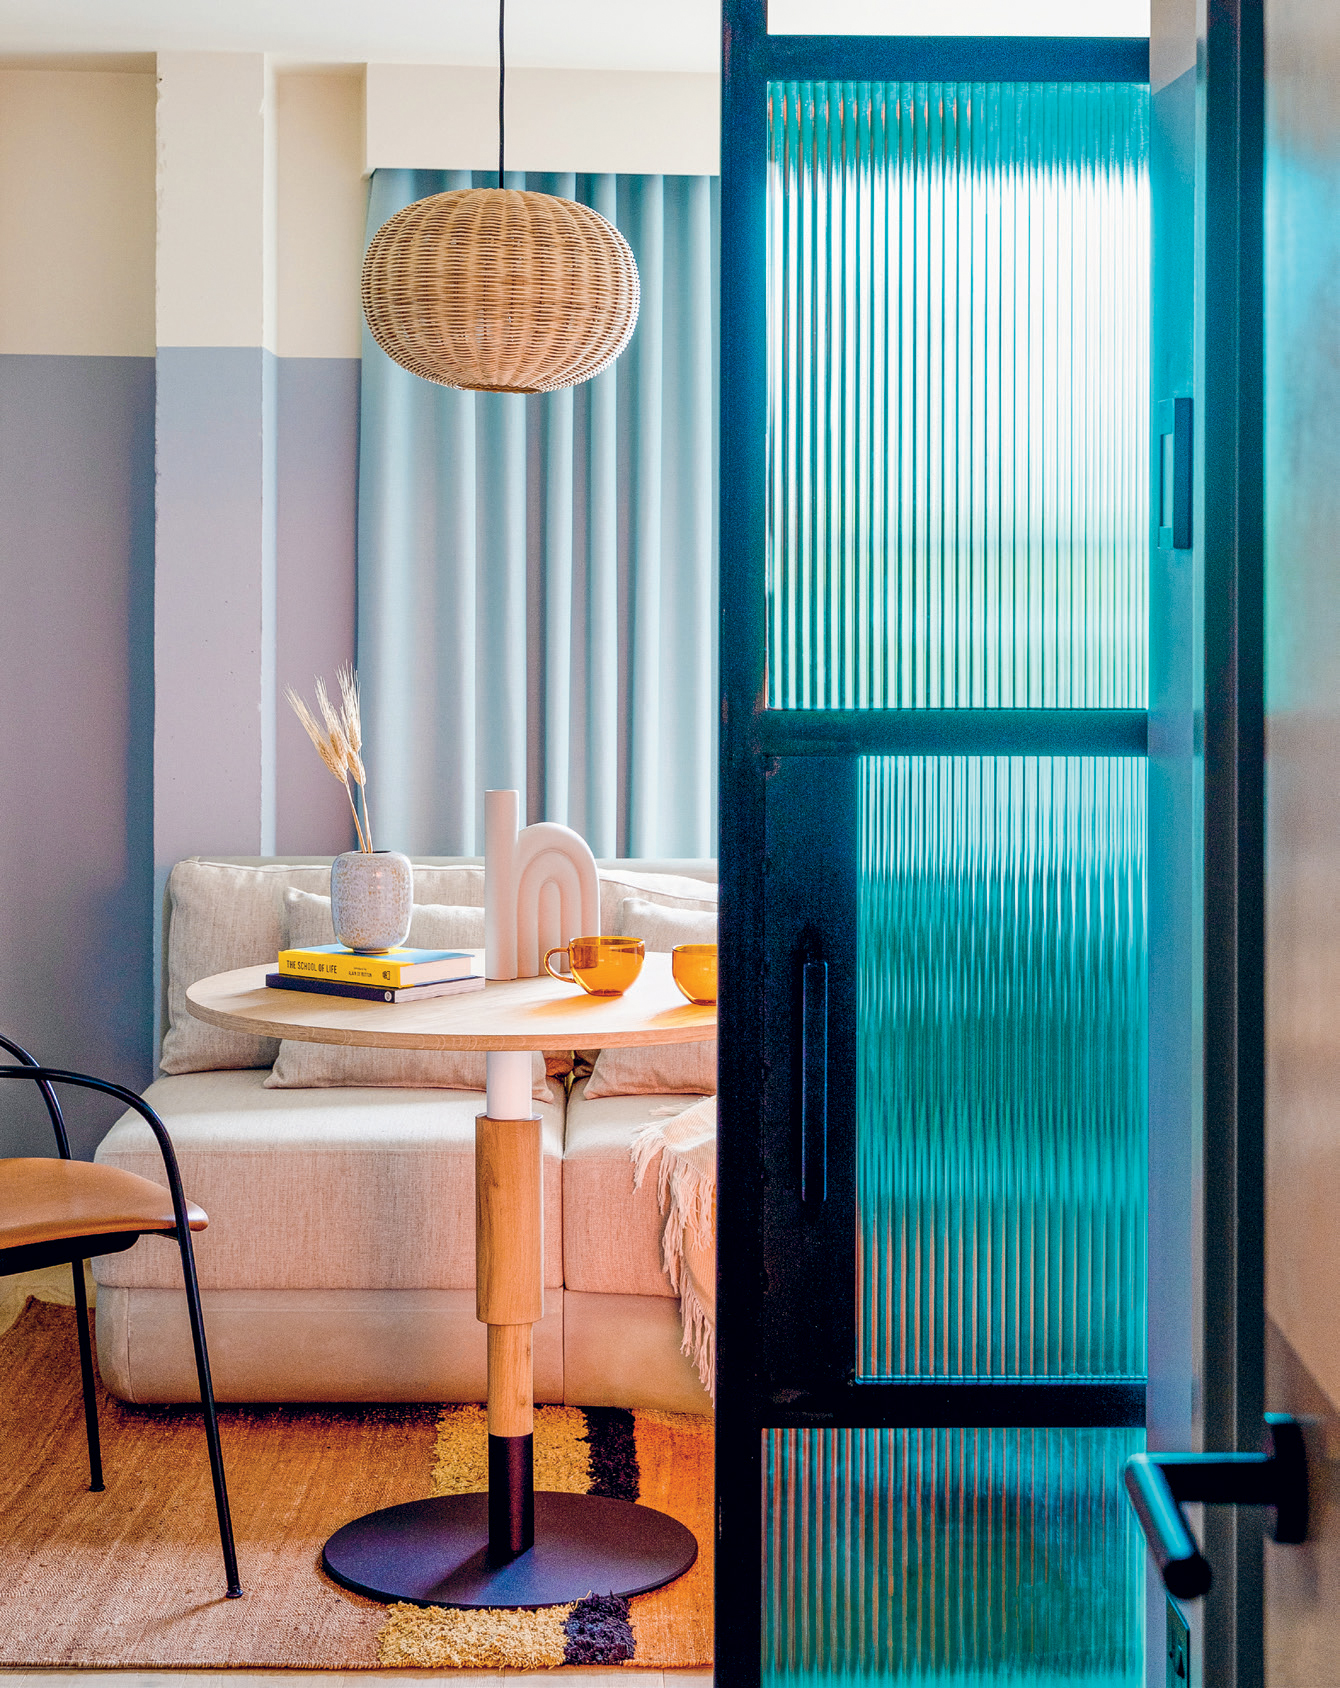 The bar and dining offerings reflect the tastes of the area; the apartments are not huge, but clever design and decor make the most of the dimensions; bedrooms are beautifully appointed; each apartment features a kitchen spacious enough to cook in.